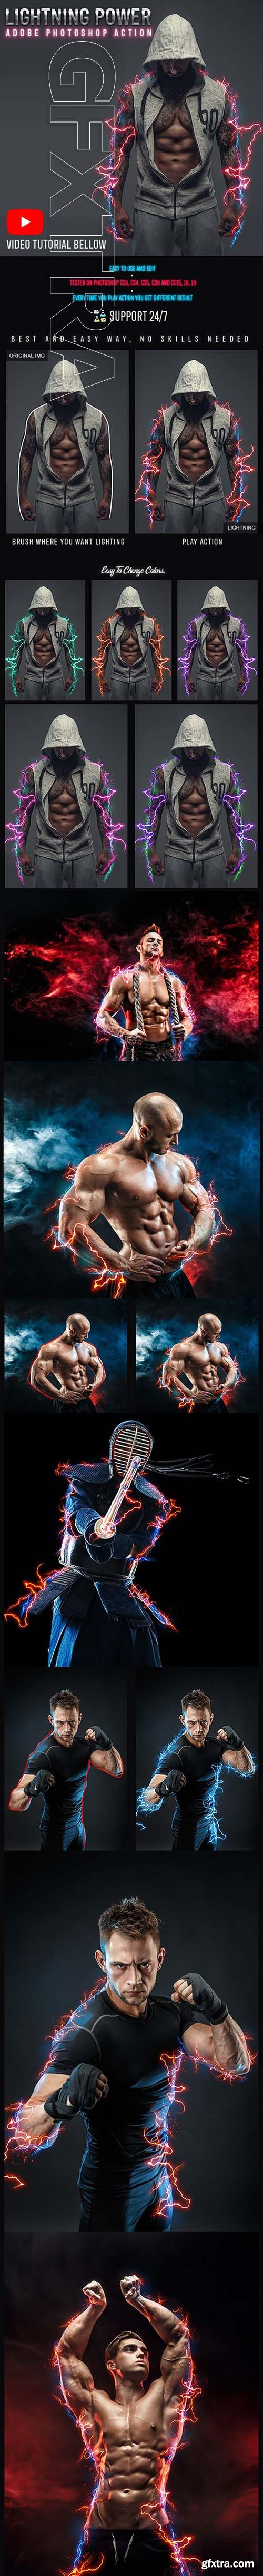 GraphicRiver - Lightning Power Photoshop Action 24774308